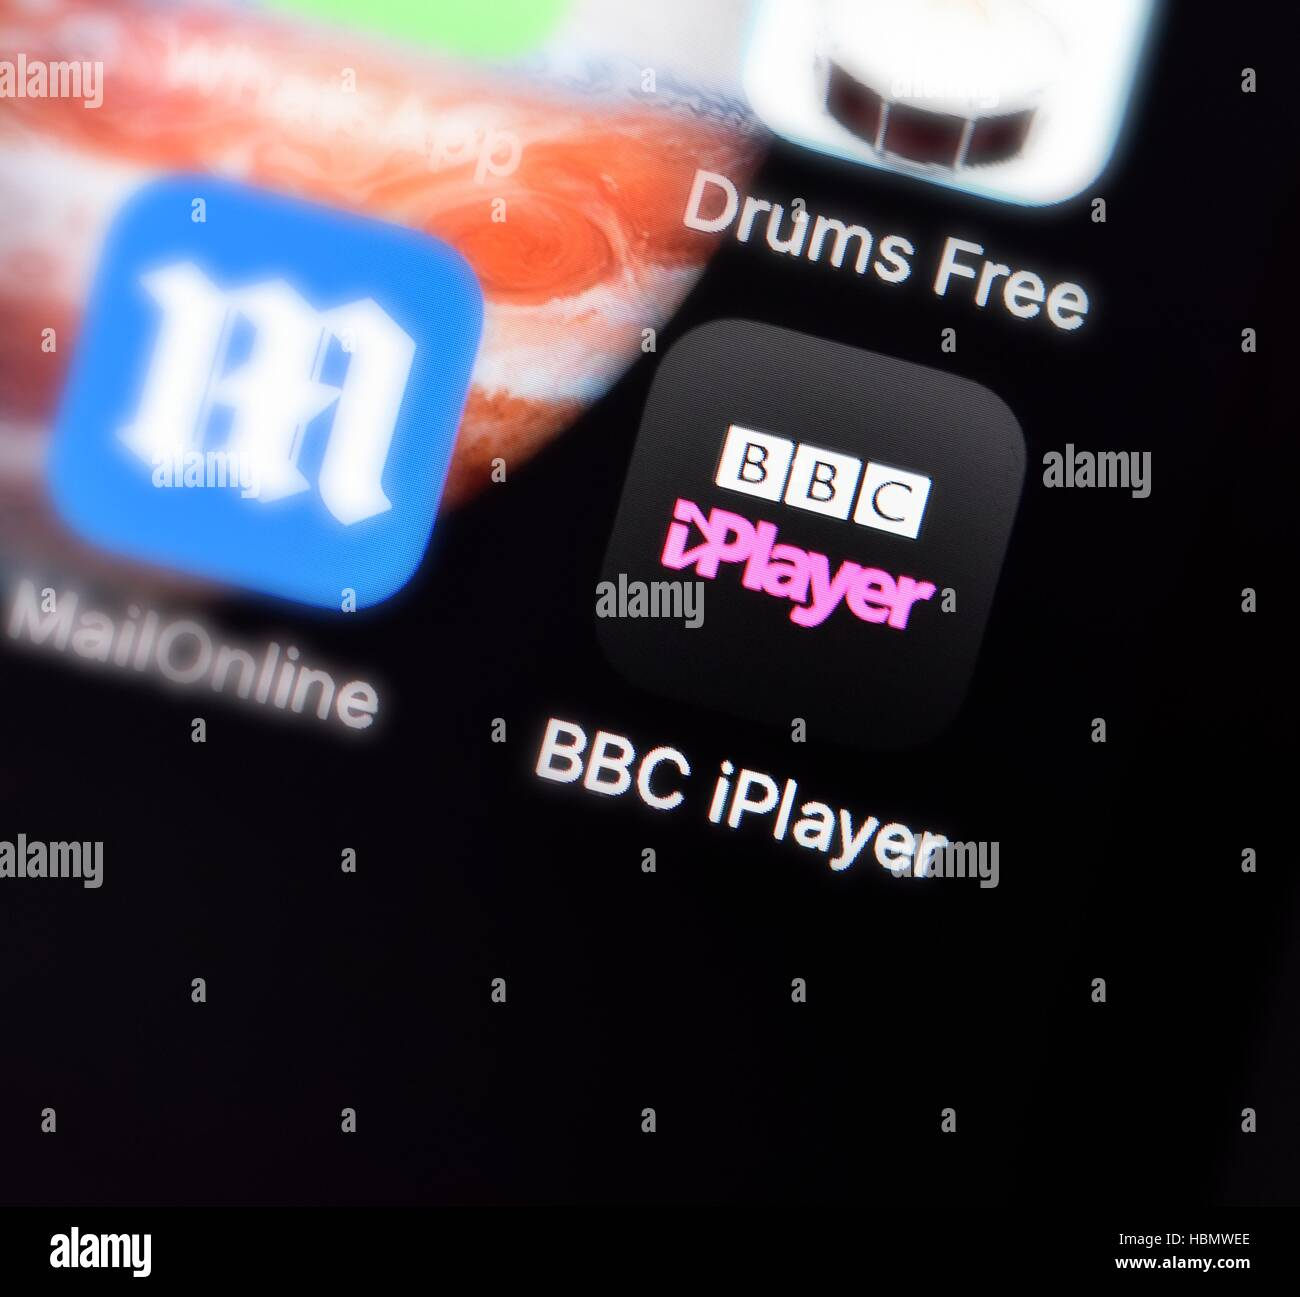 bbc logo stock photos amp bbc logo stock images alamy